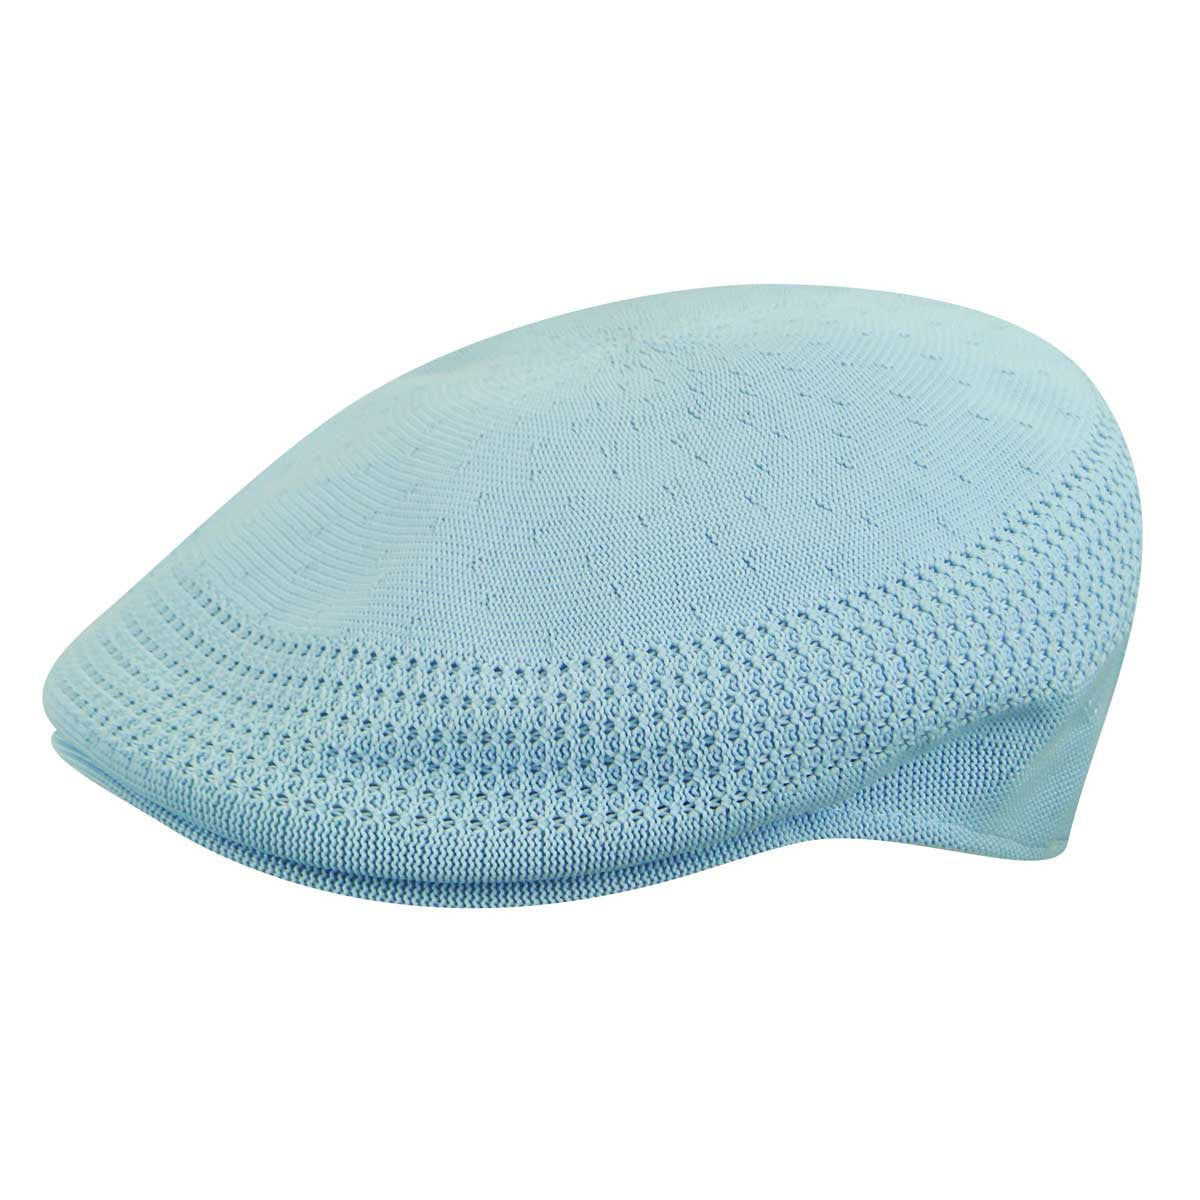 Kangol Tropic 504 Ventair Baby Blue Spring Summer Cap